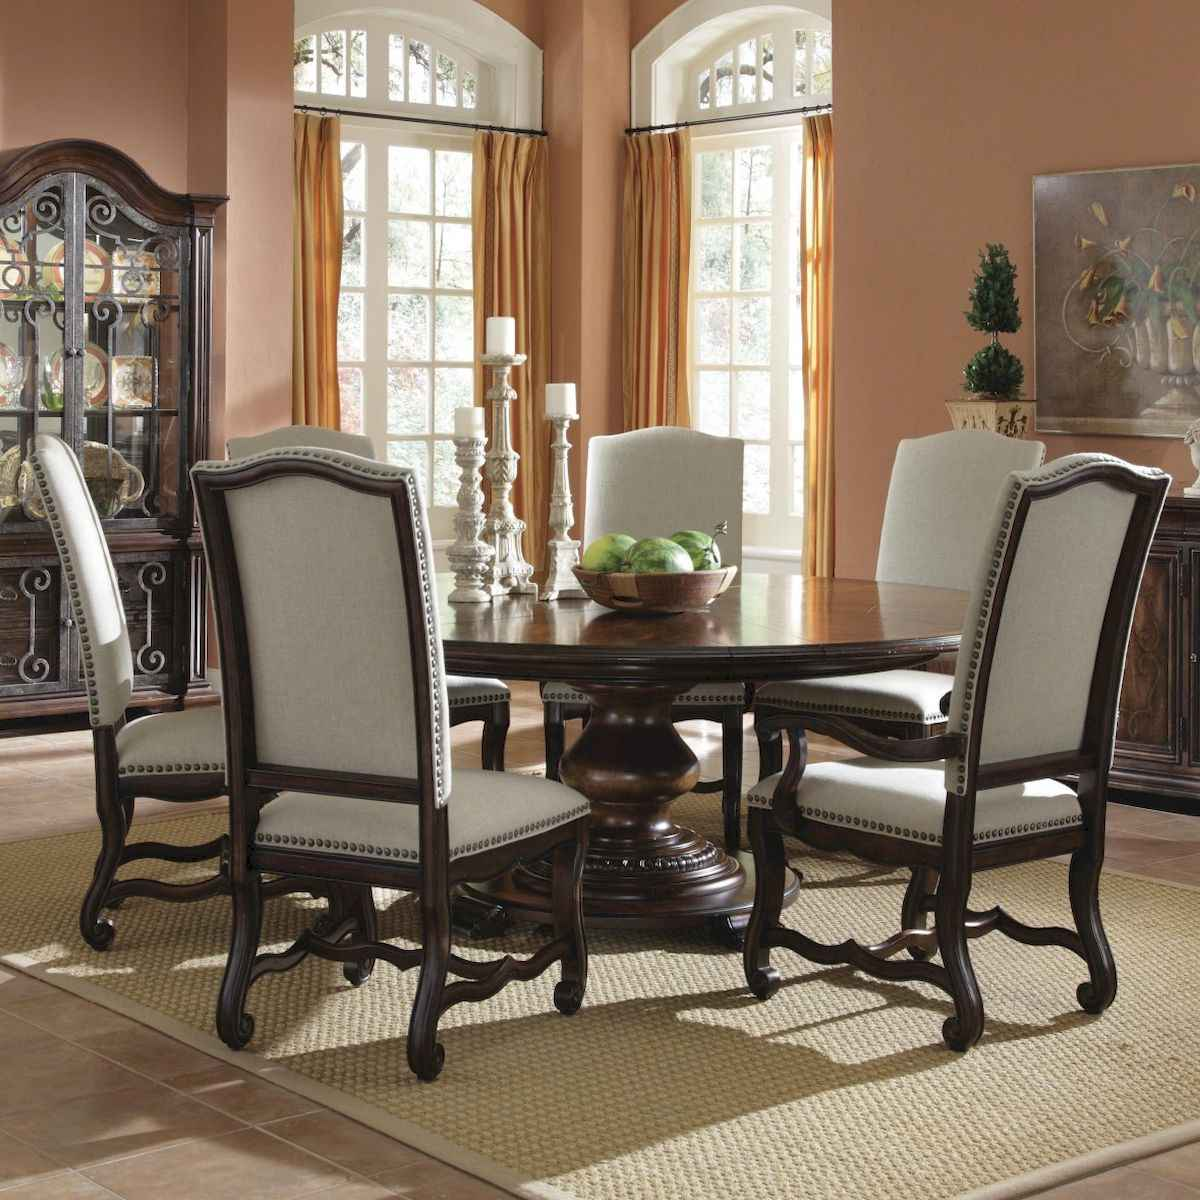 100 Awesome Vintage Dining Table Design Ideas Decorations And Remodel (83)